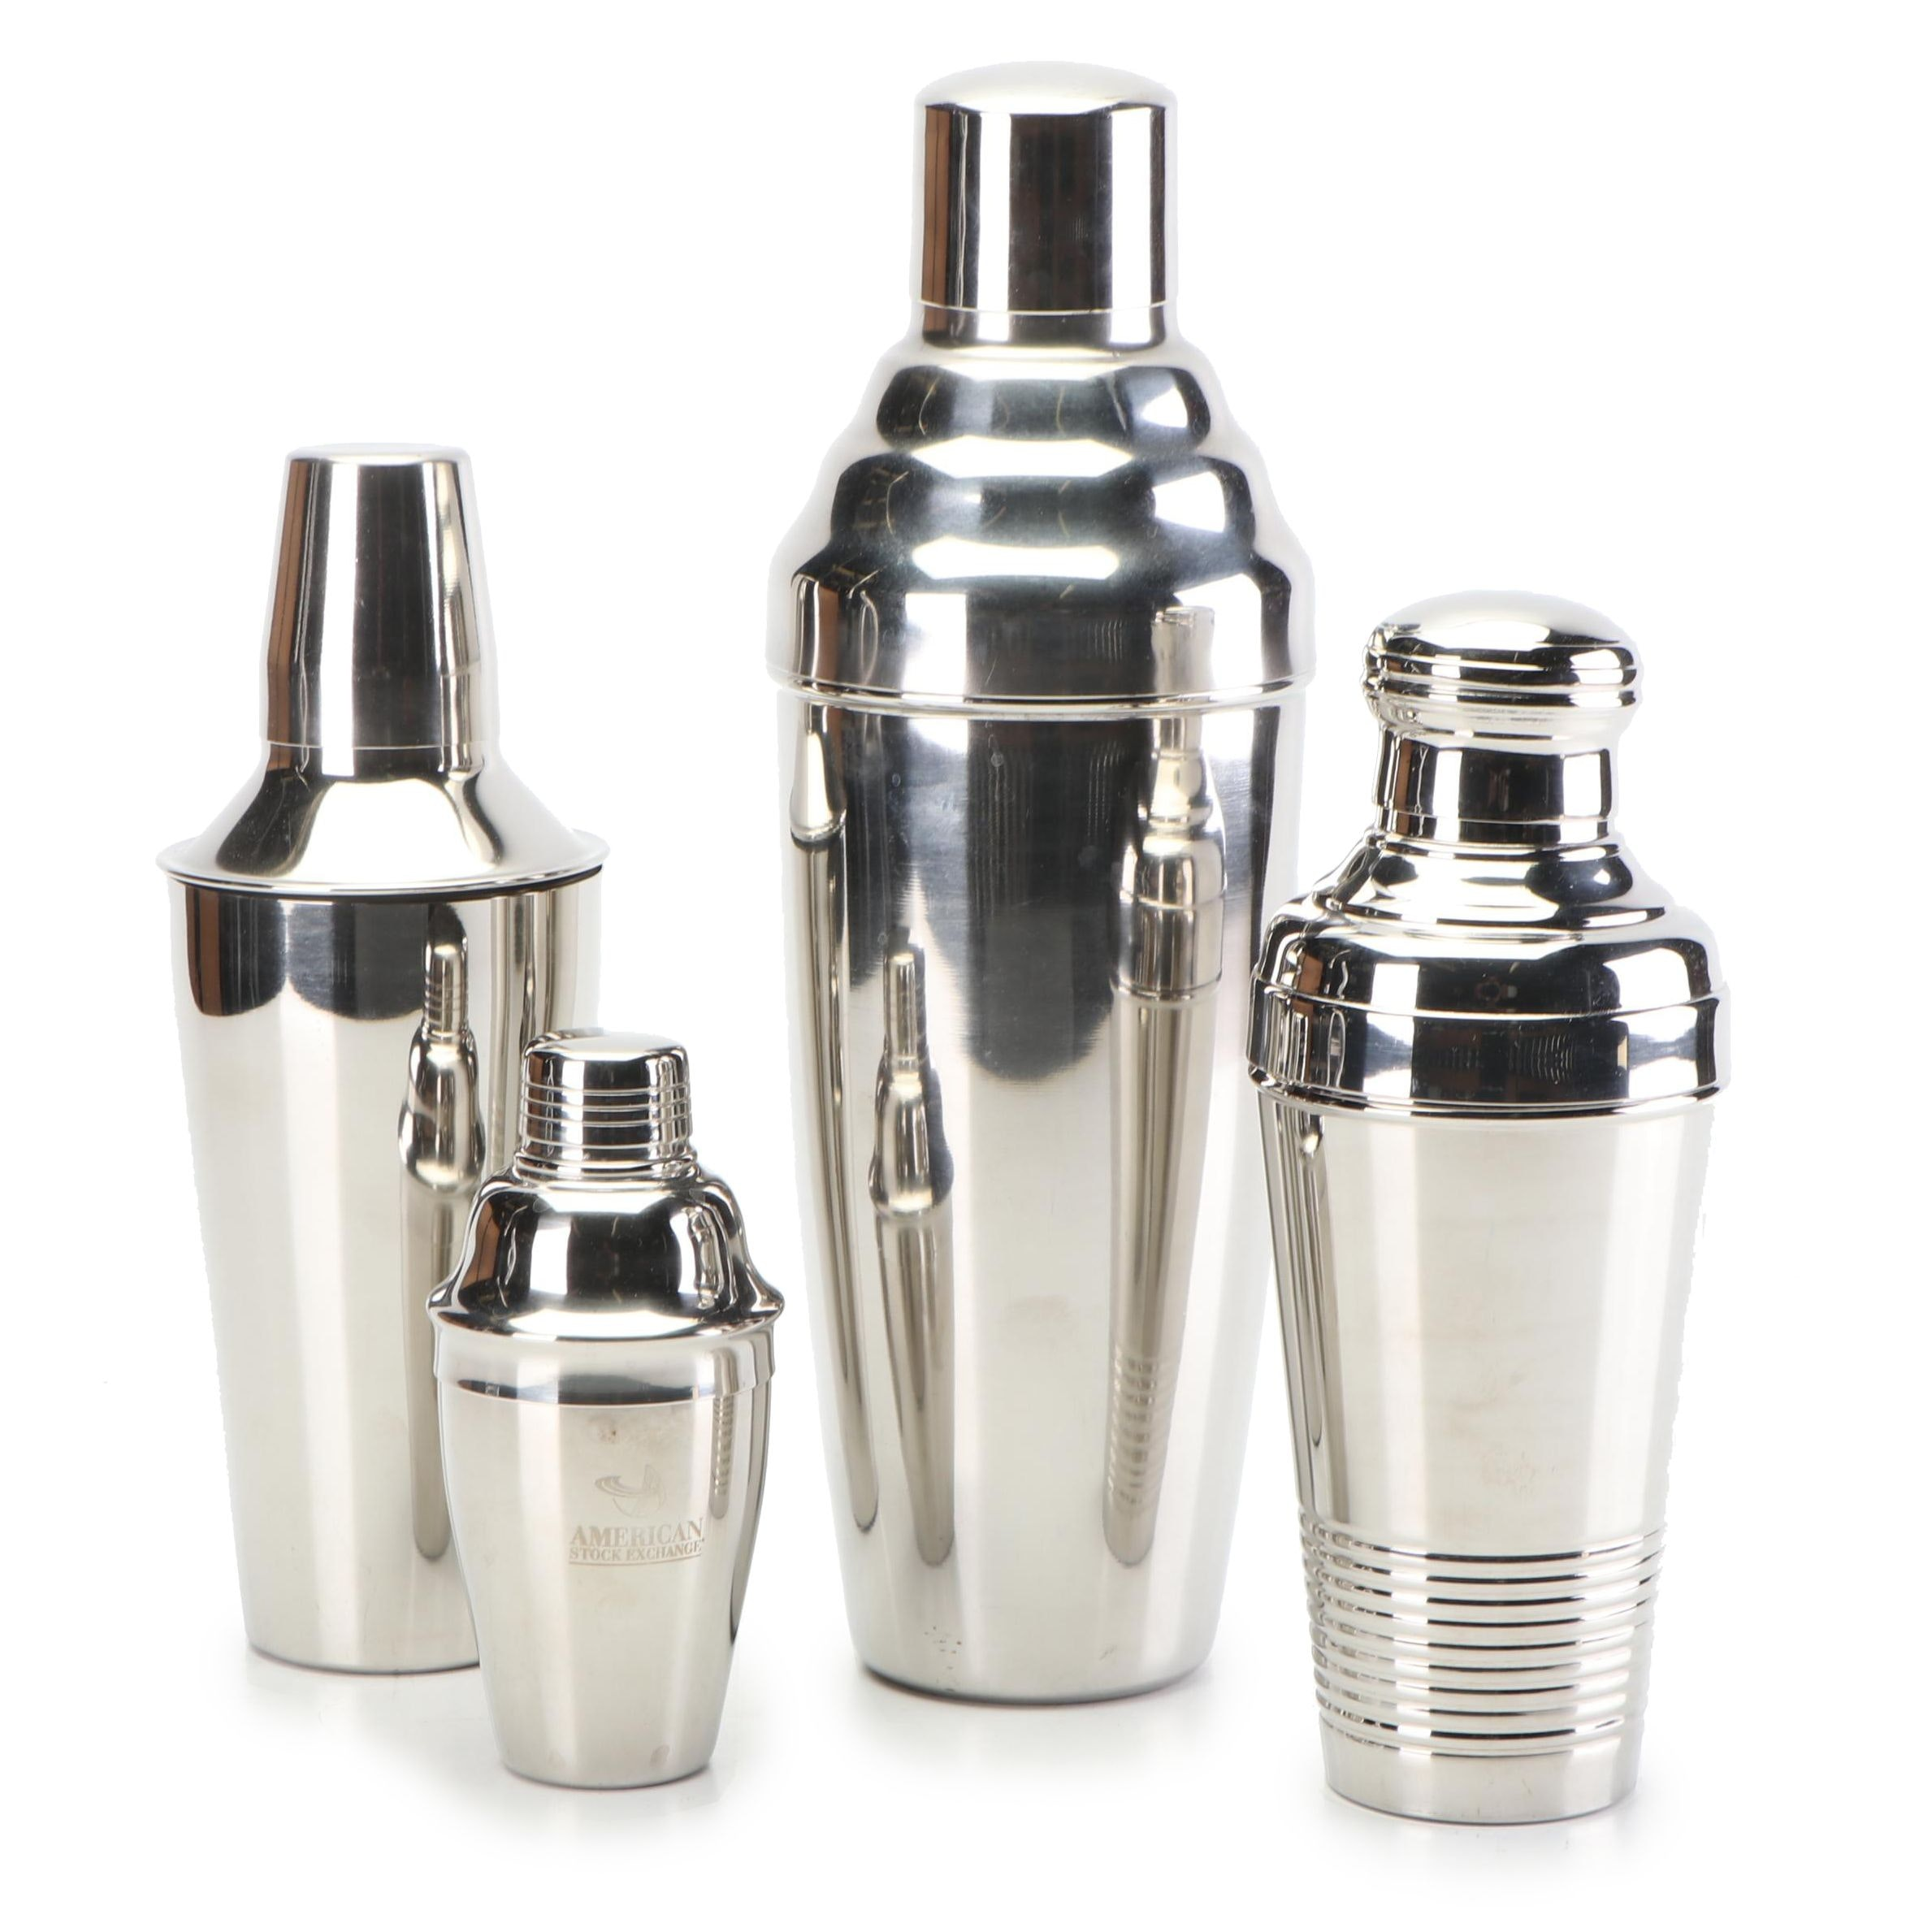 Stainless Steel Cocktail Shakers, Contemporary